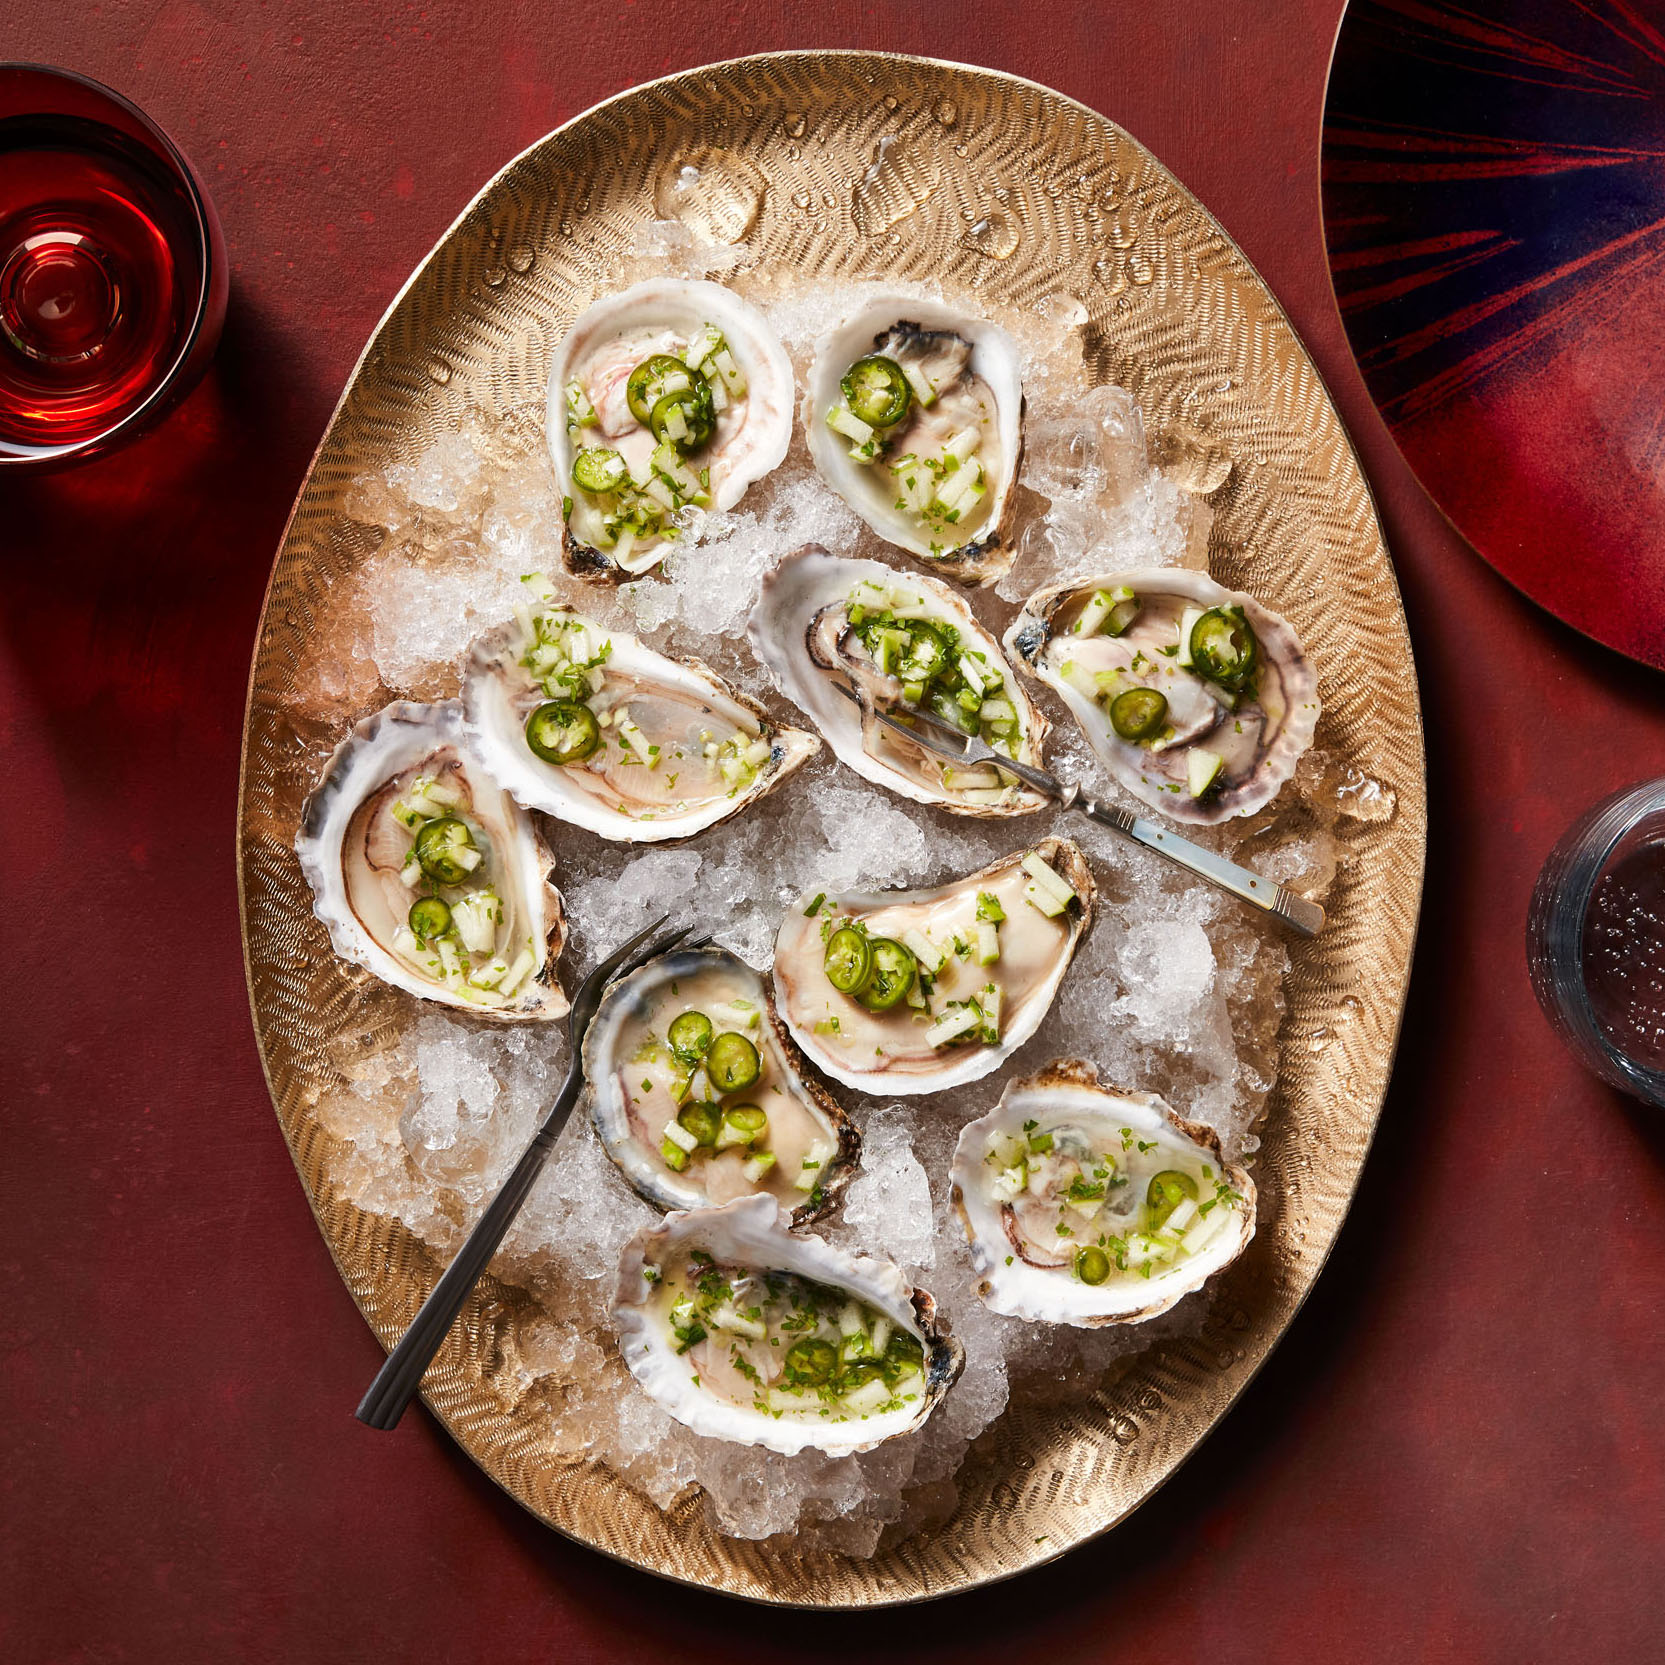 oysters with green apple-jalapeno mignonette served on gold platter